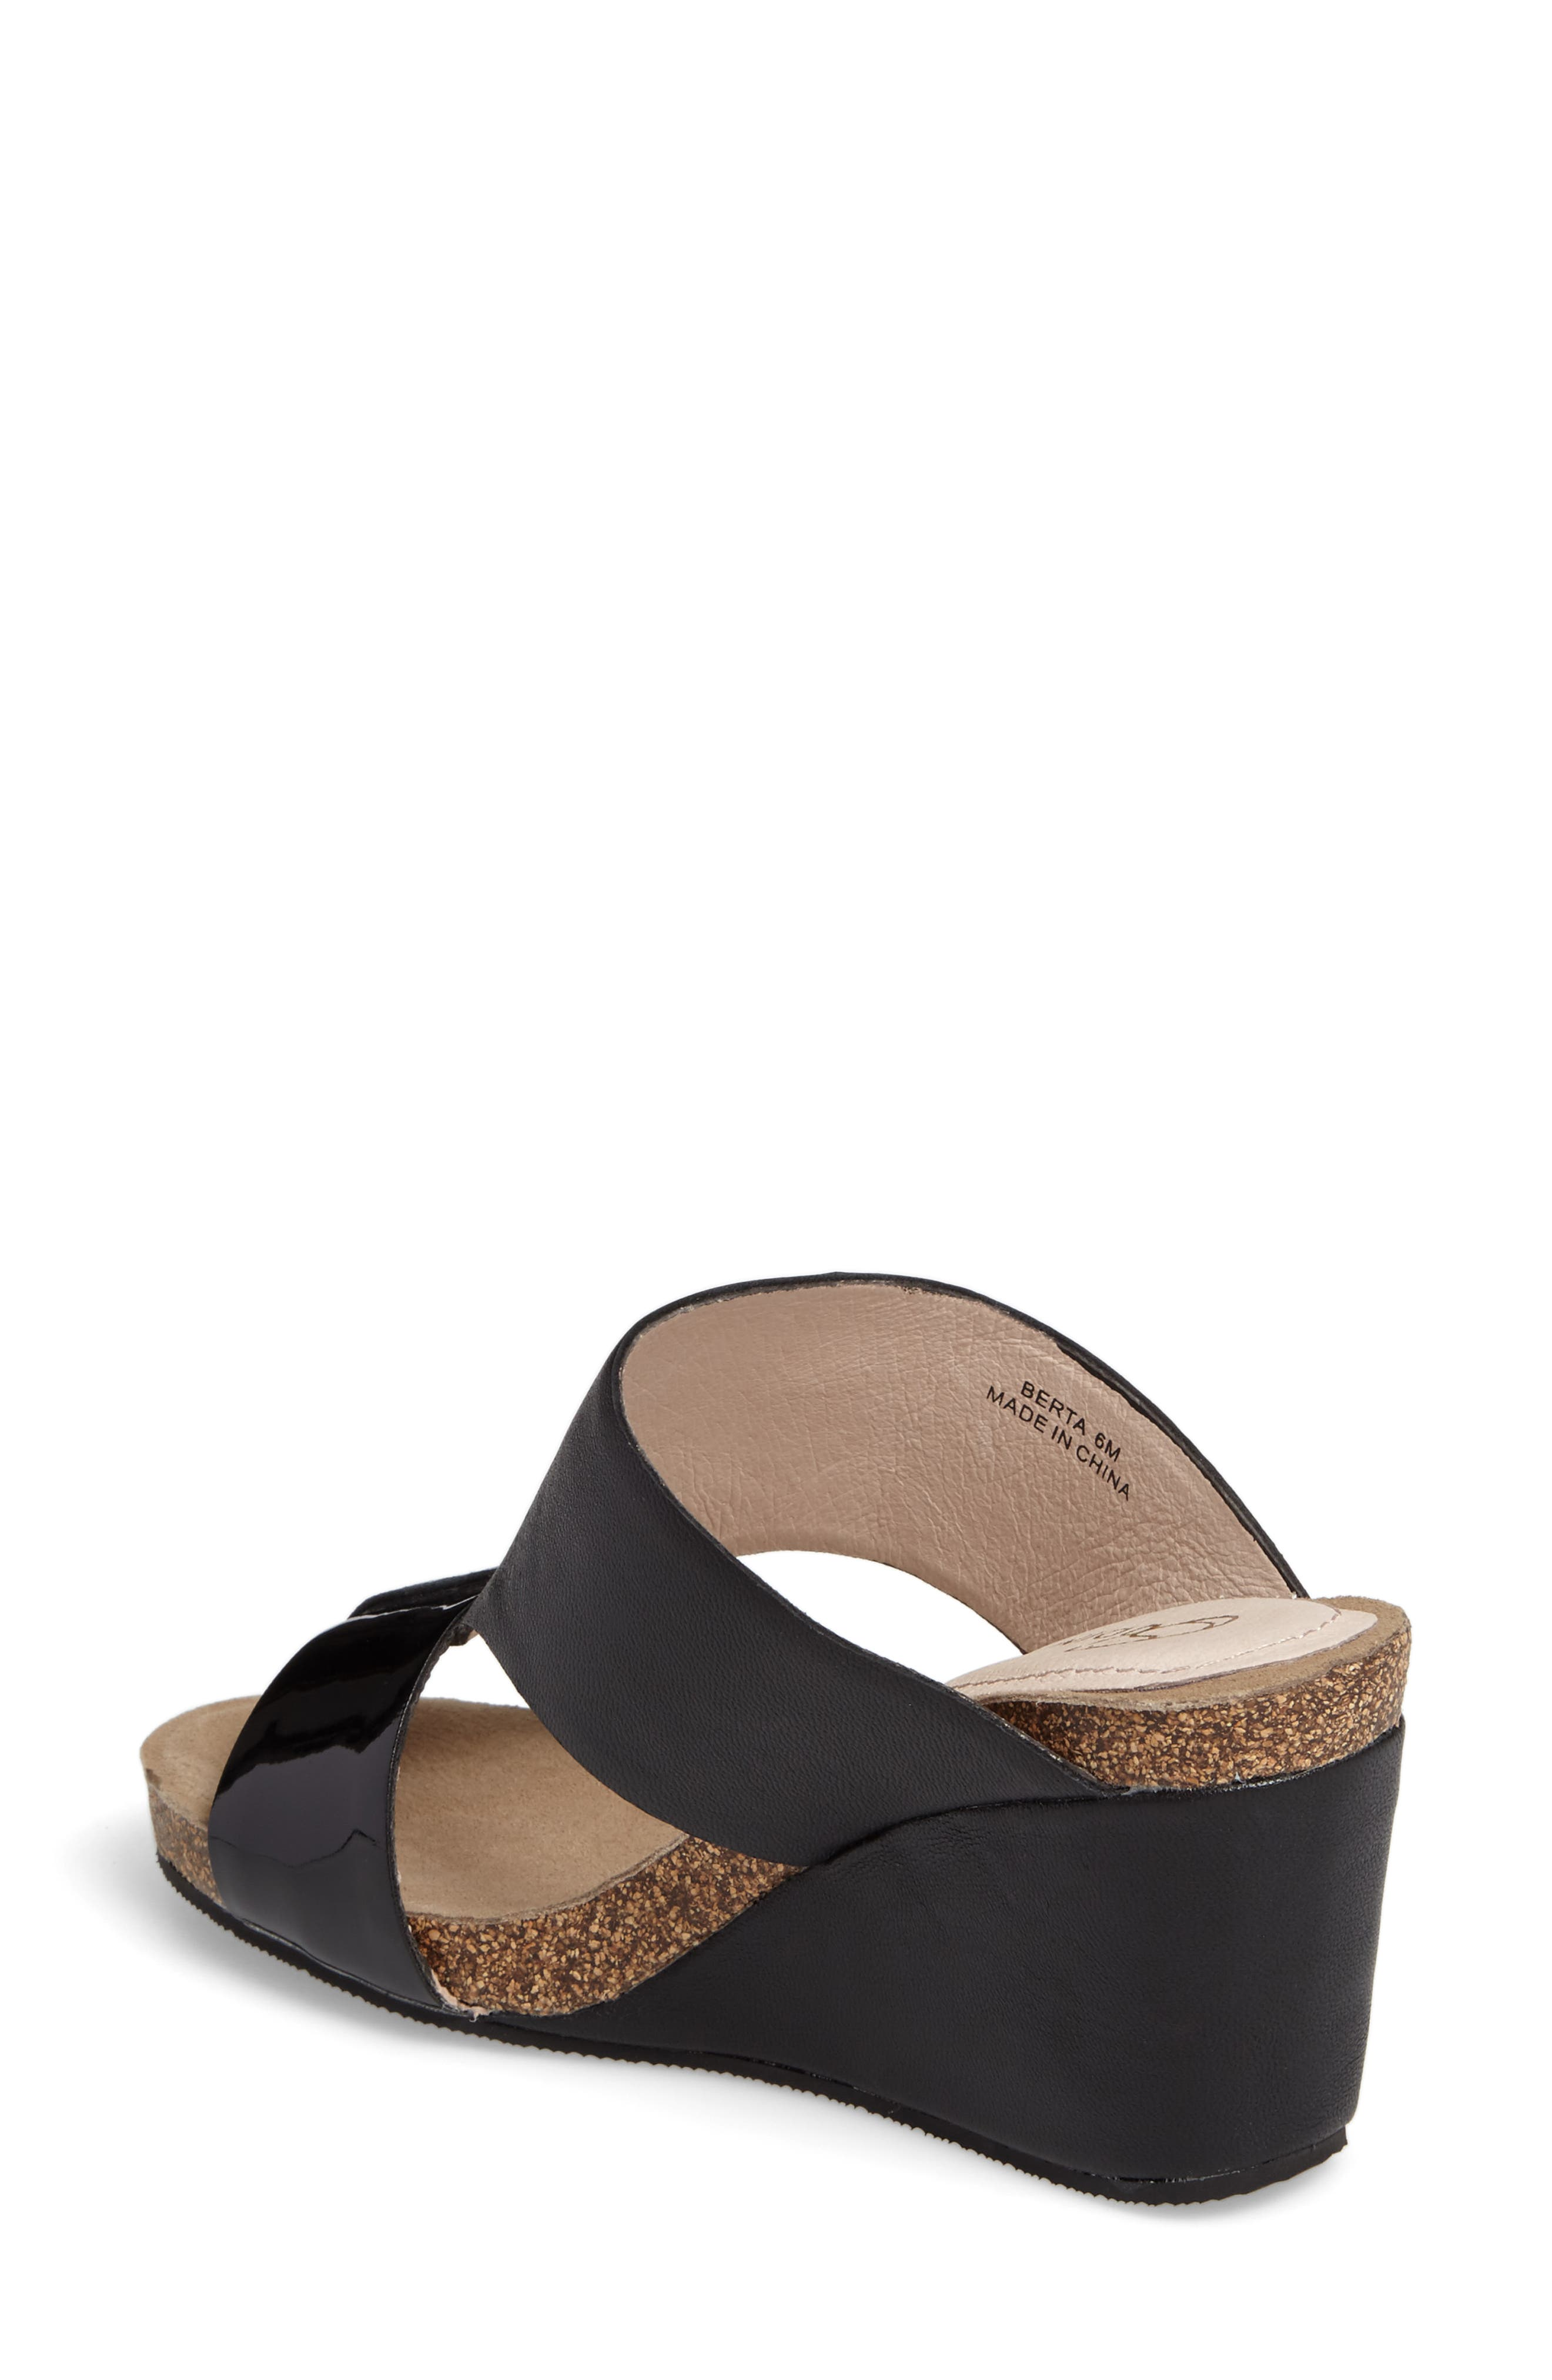 Berta Wedge Sandal,                             Alternate thumbnail 2, color,                             001